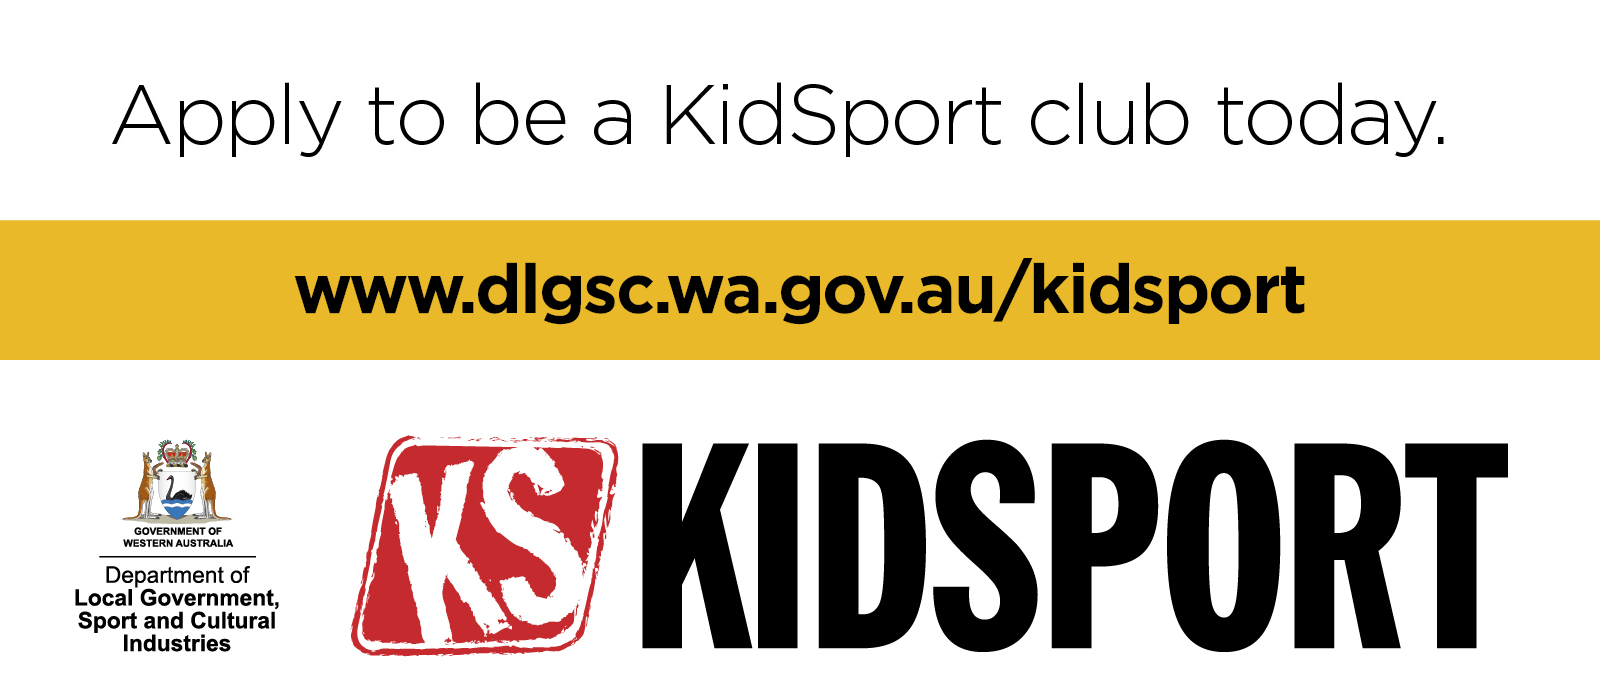 KidSport website images Apply to be a KidSport club today words only